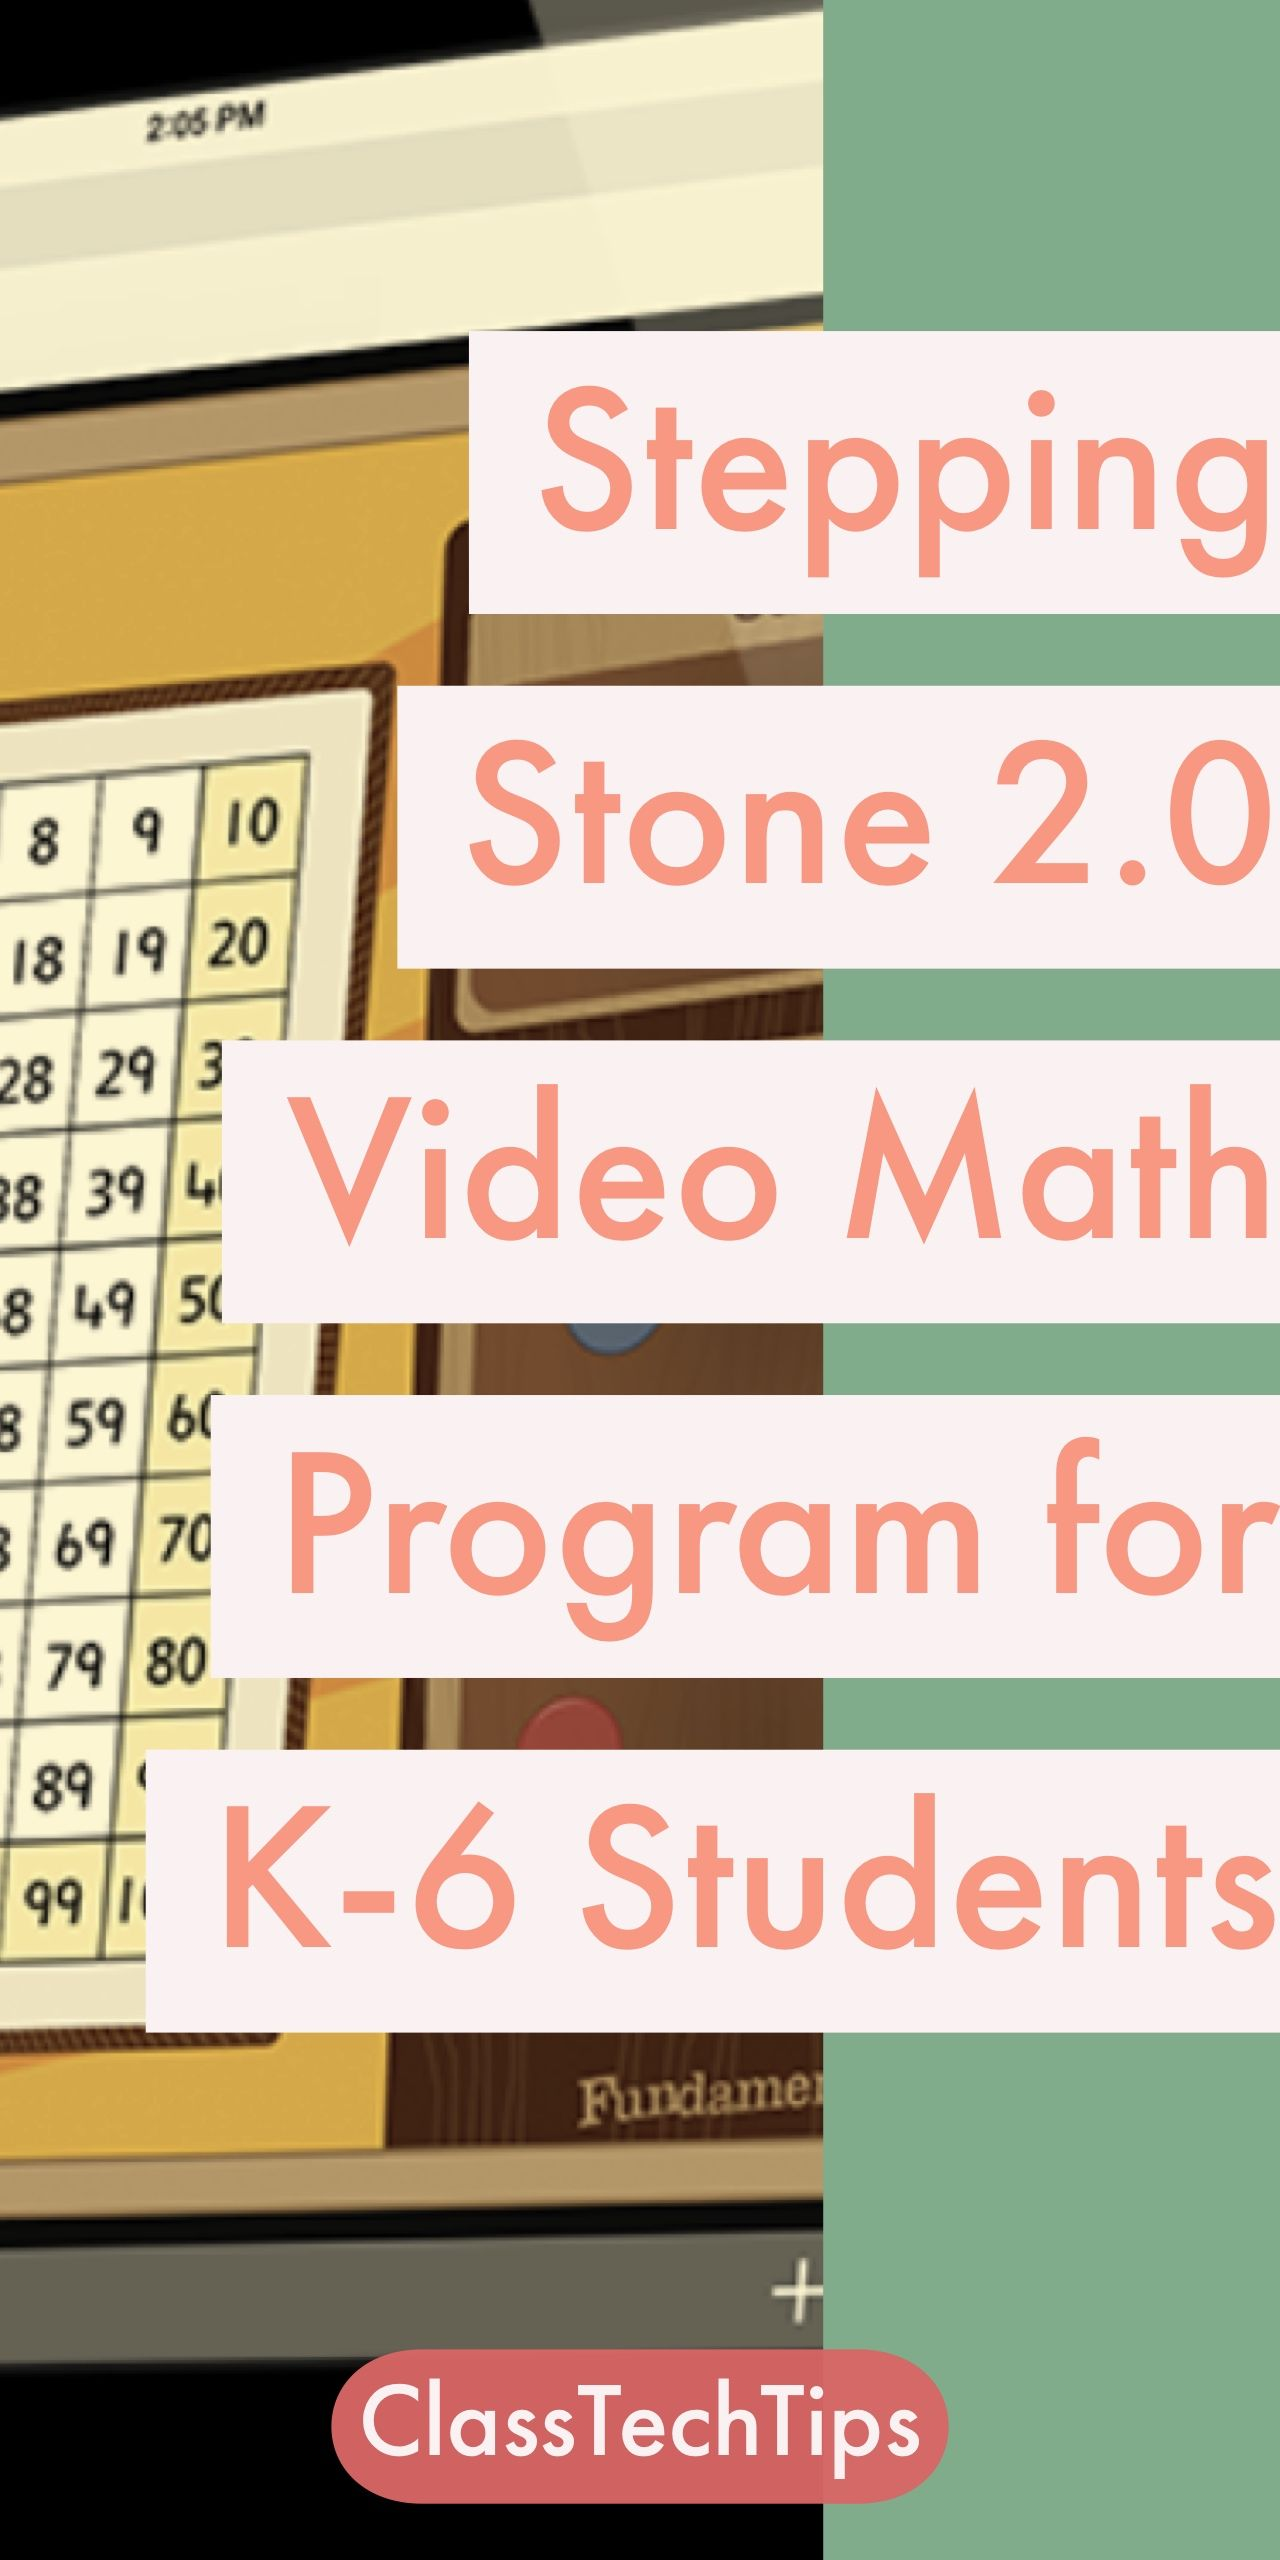 Stepping Stones 2.0 Video Math Program for K-6 Students ...